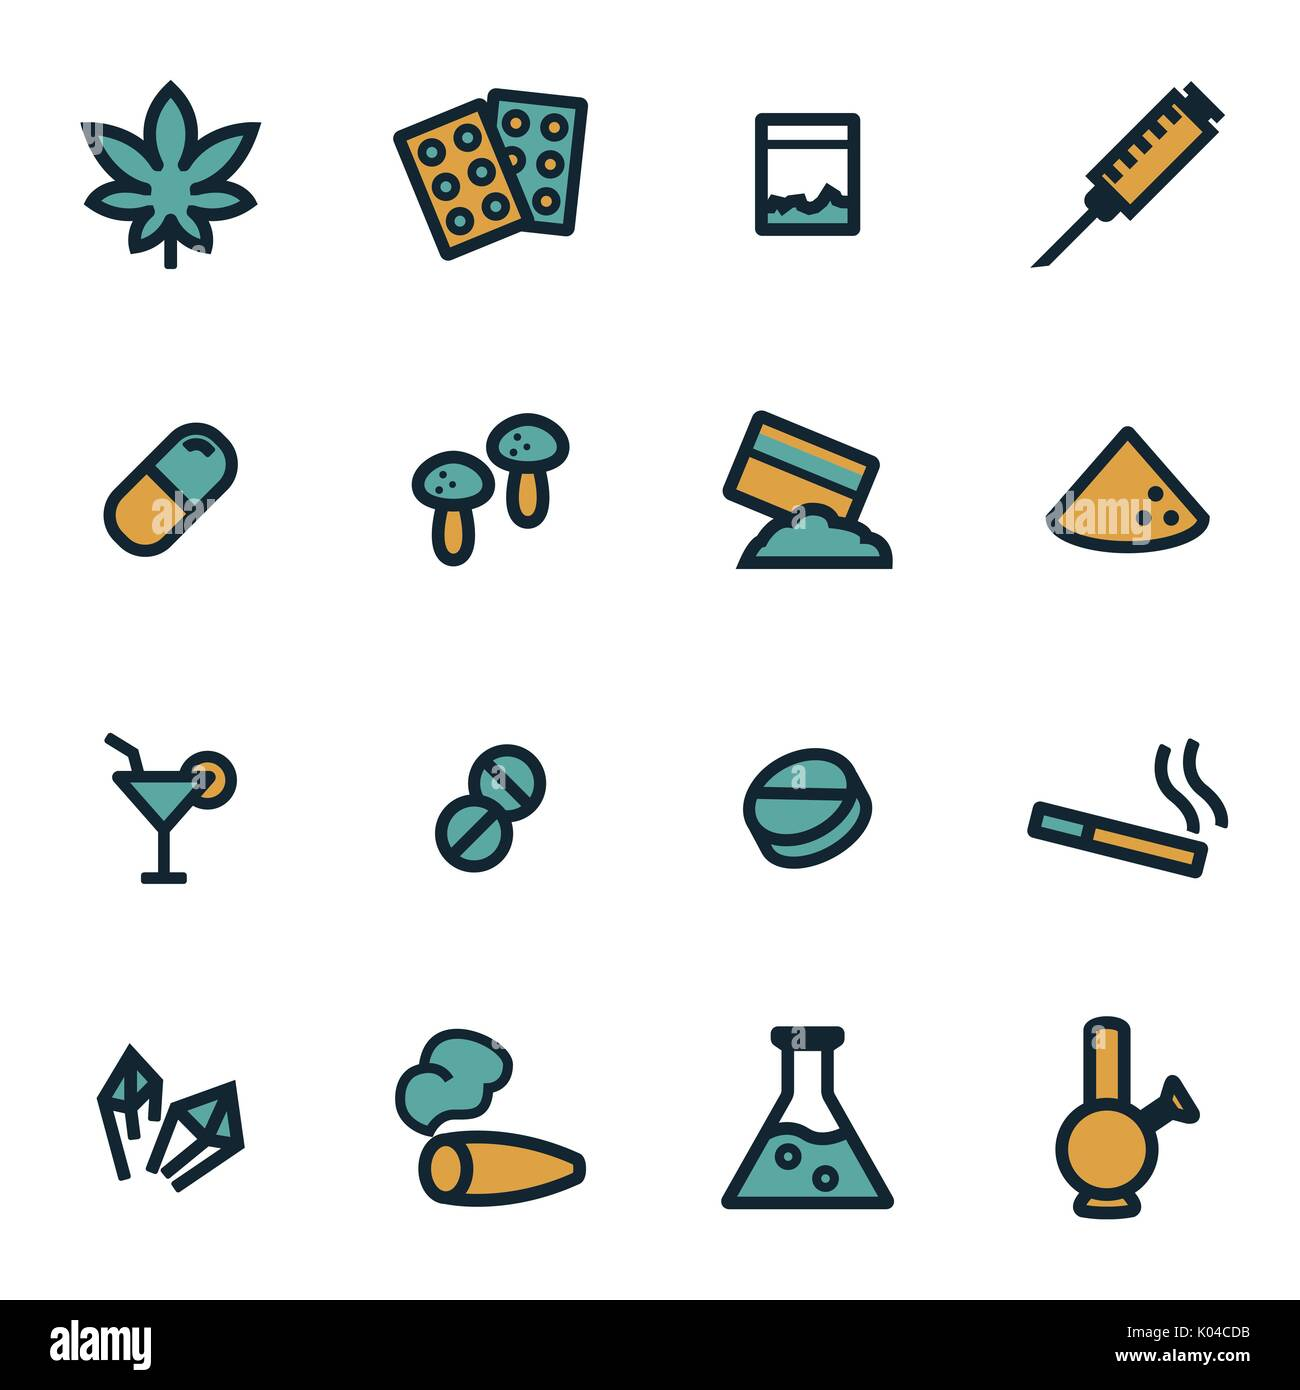 24+ Drugs Vector